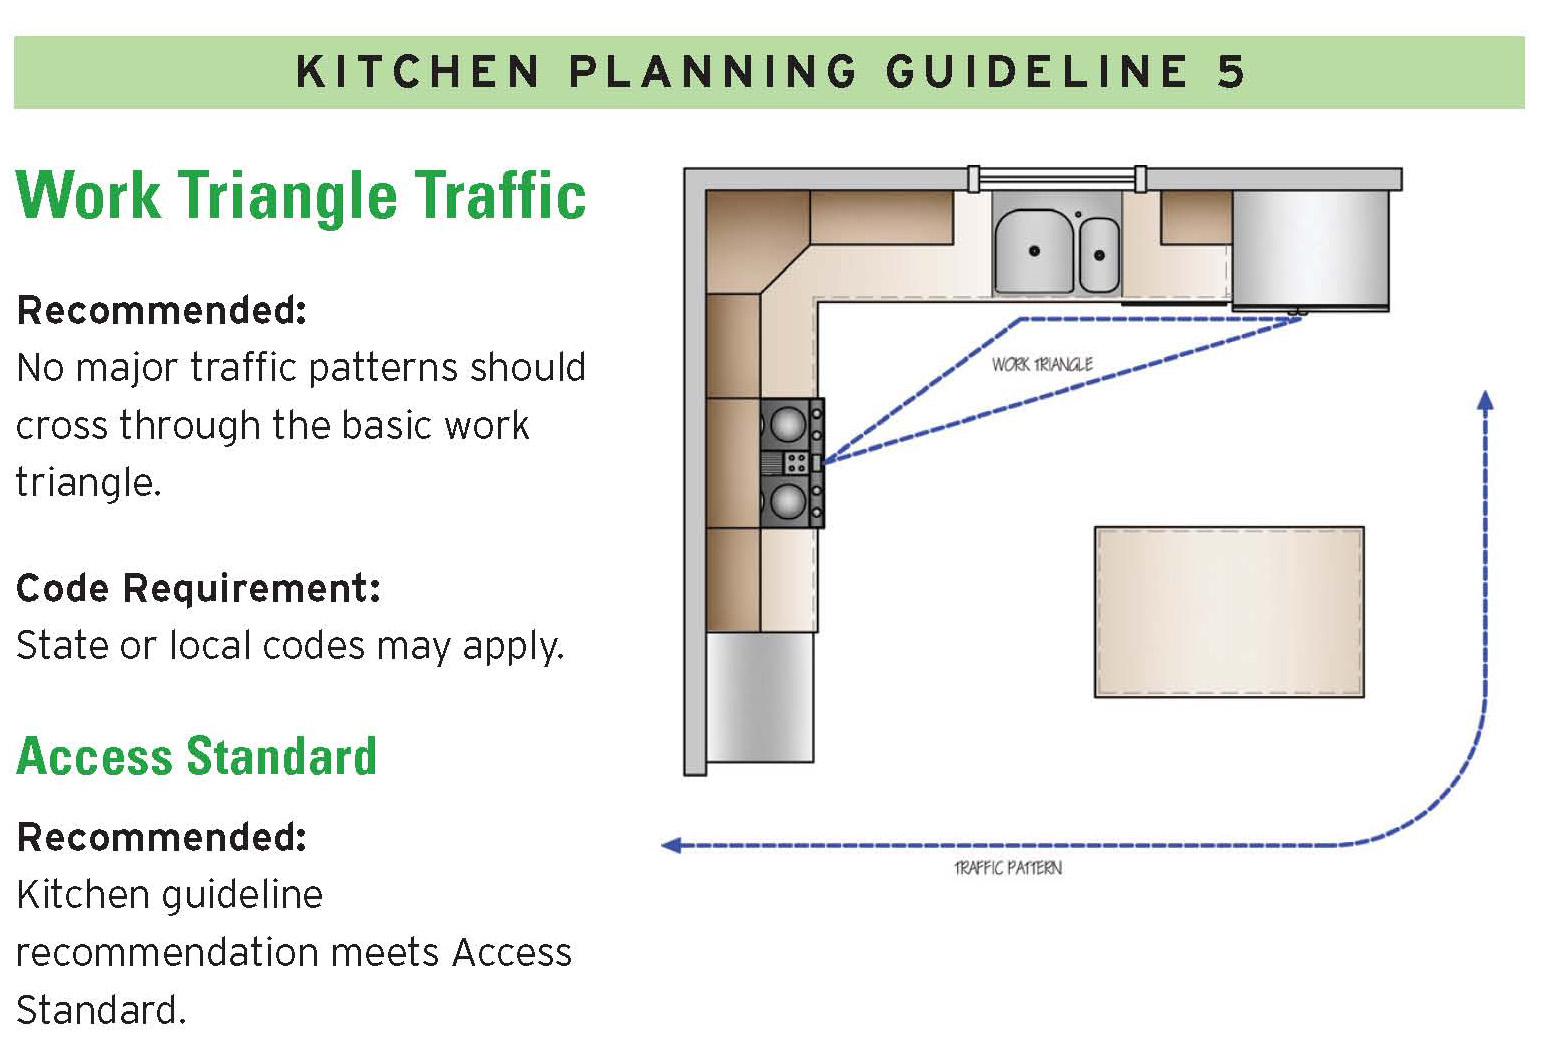 kitchen-guidelines-2012_page_05_2